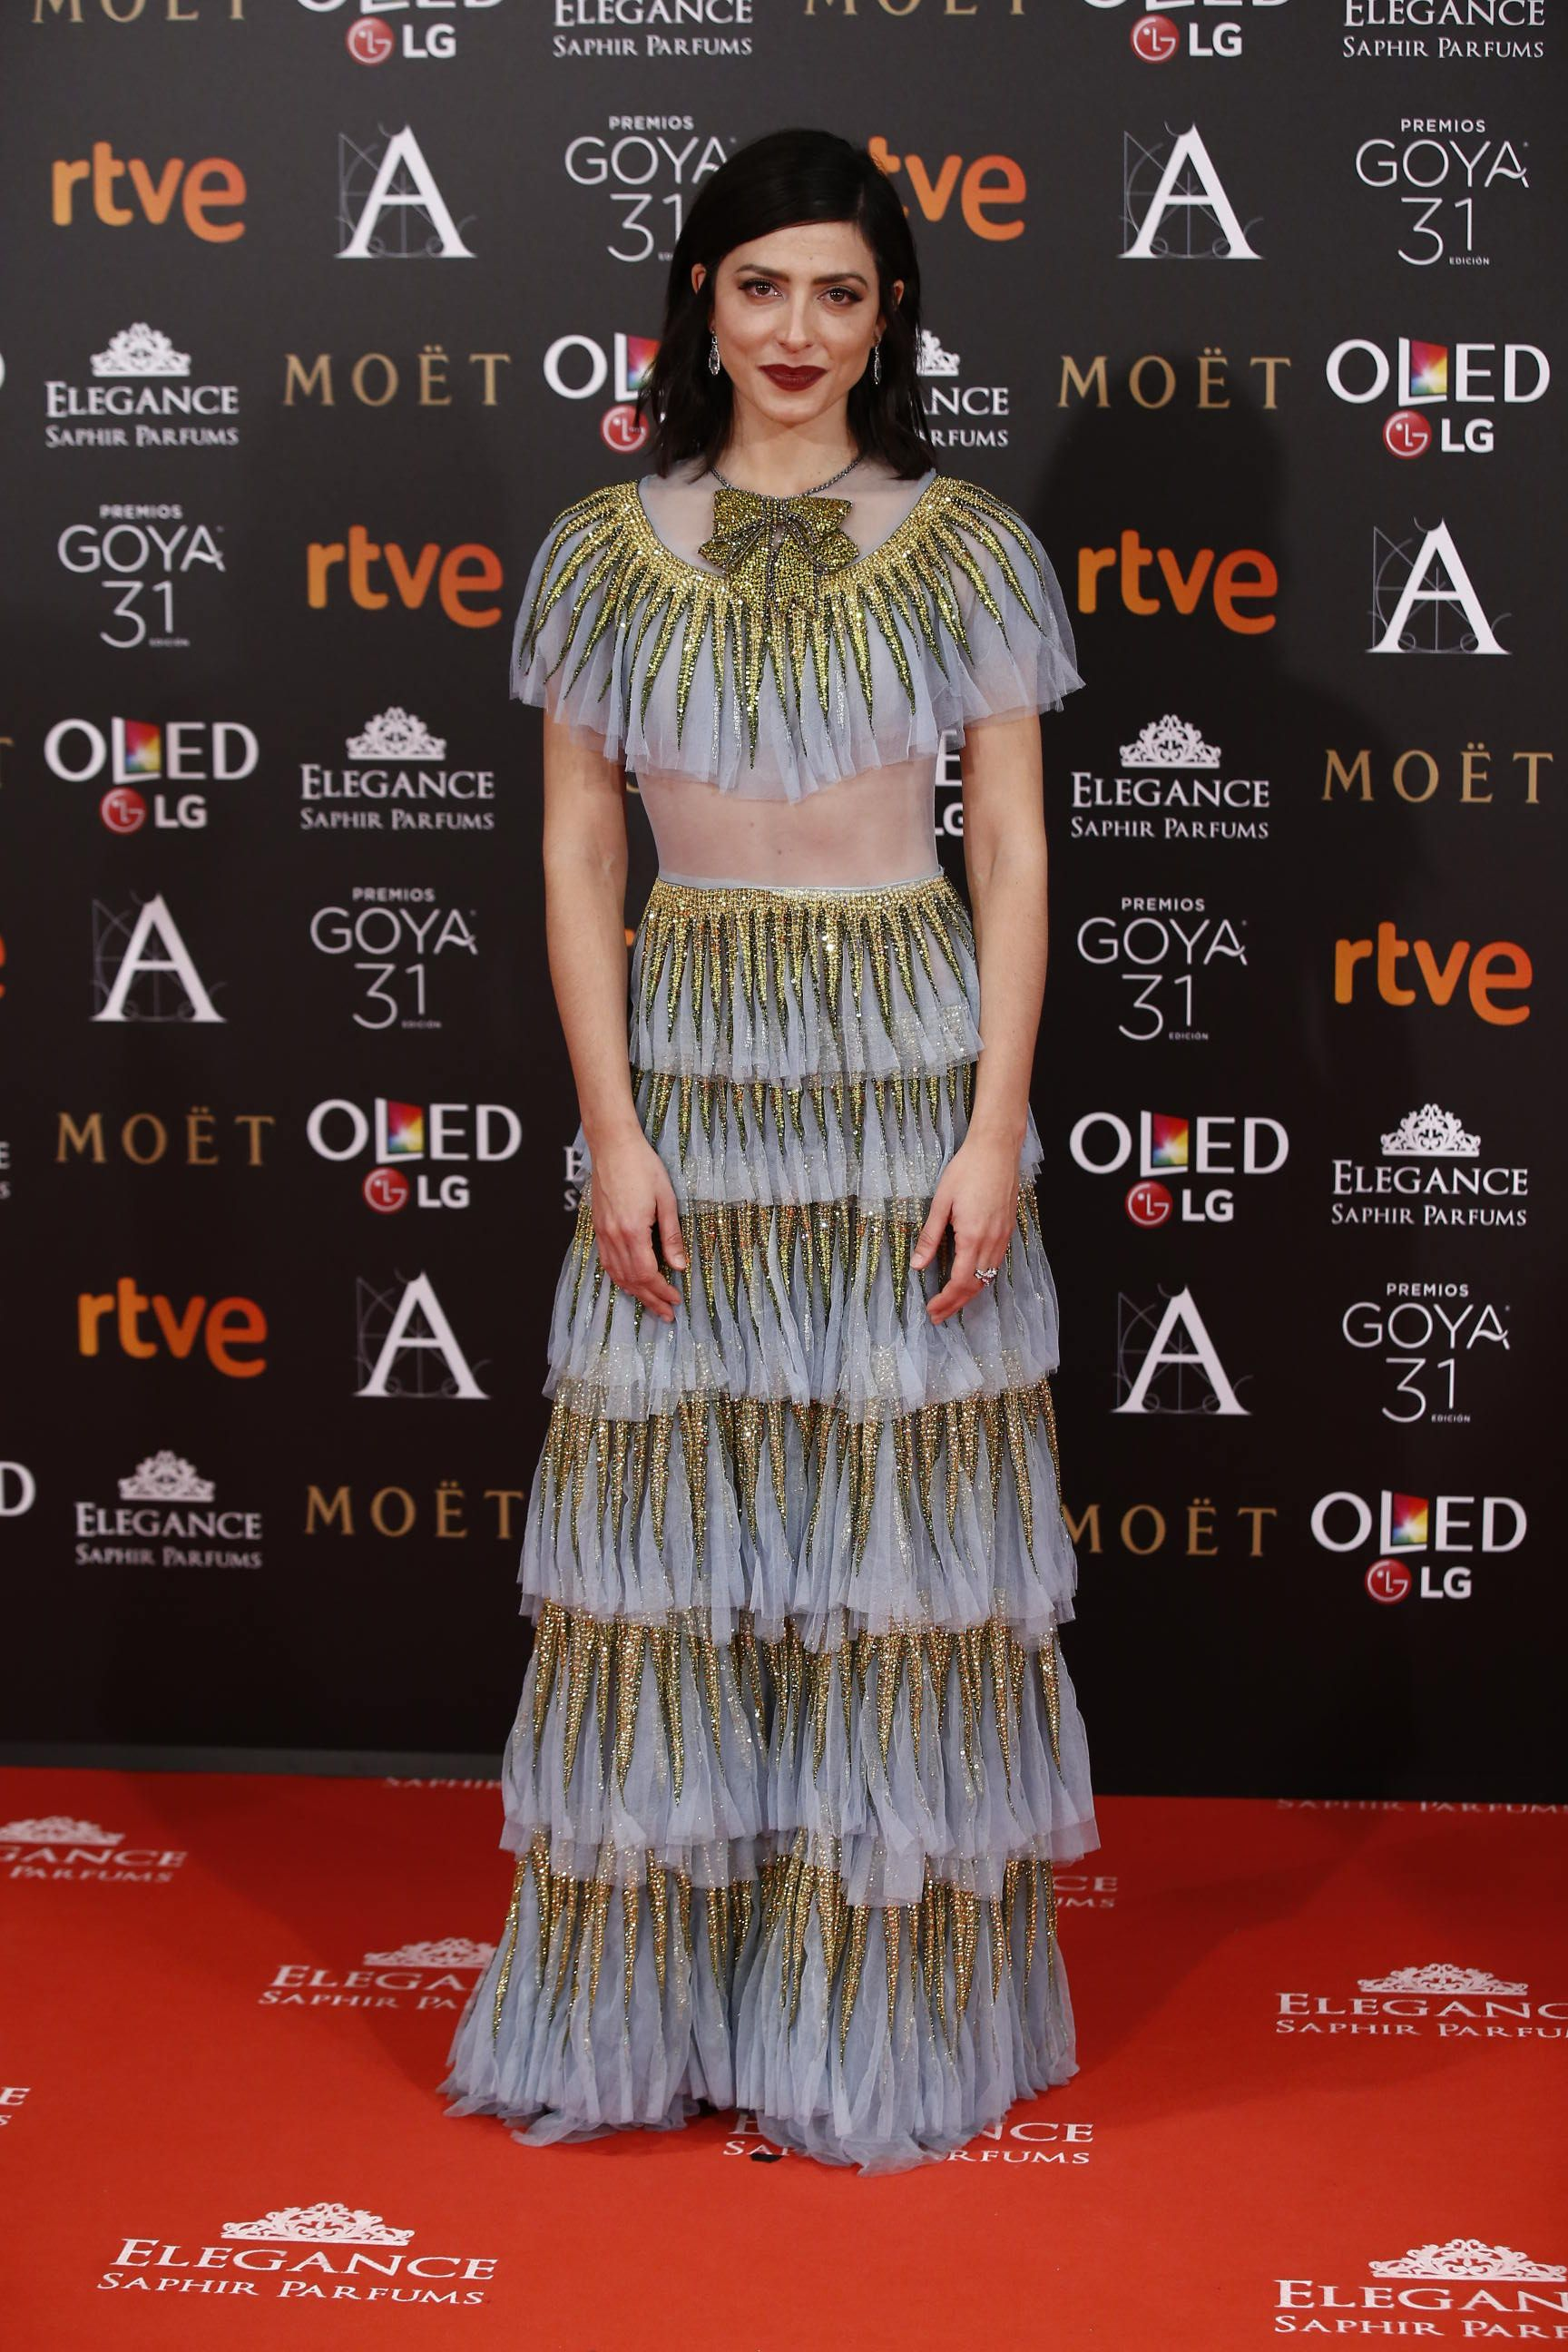 Alfombras Rojas Para Eventos Premios Goya 2017 With Love From Spain Red Carpet